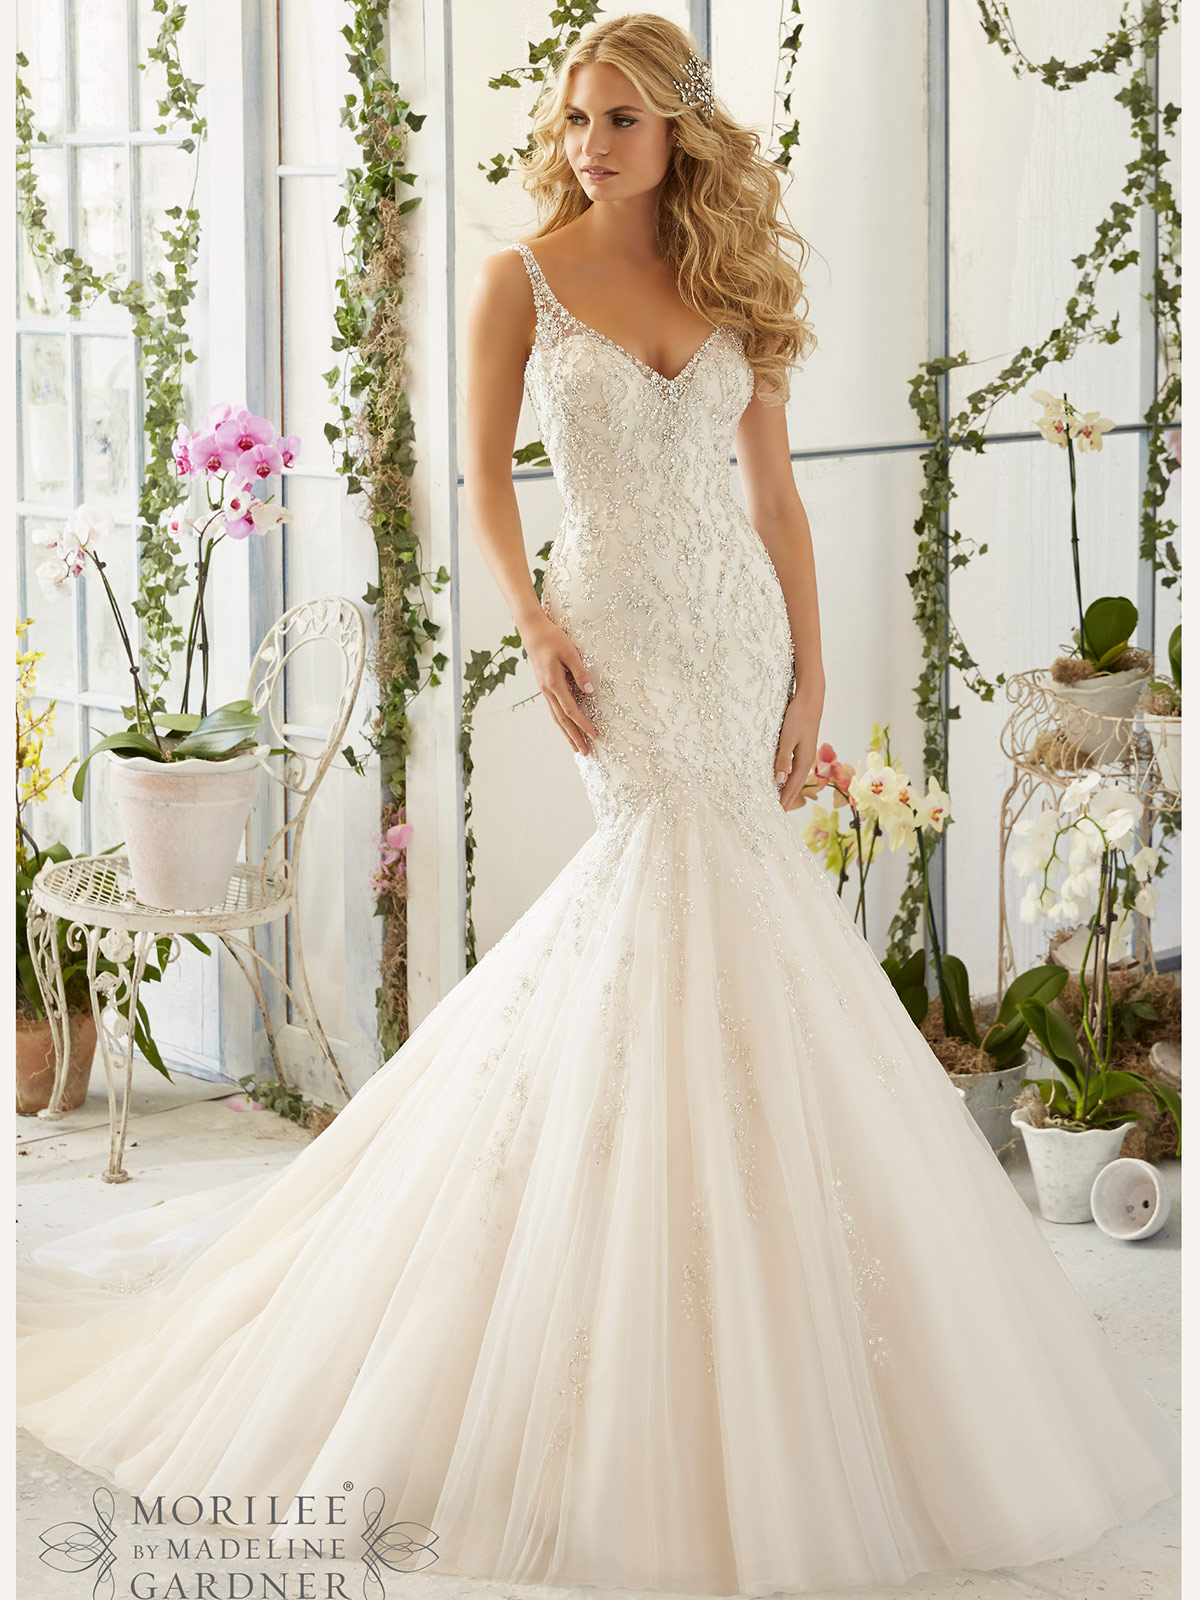 Mori lee 2823 v neck tulle mermaid bridal dress for Mori lee wedding dresses